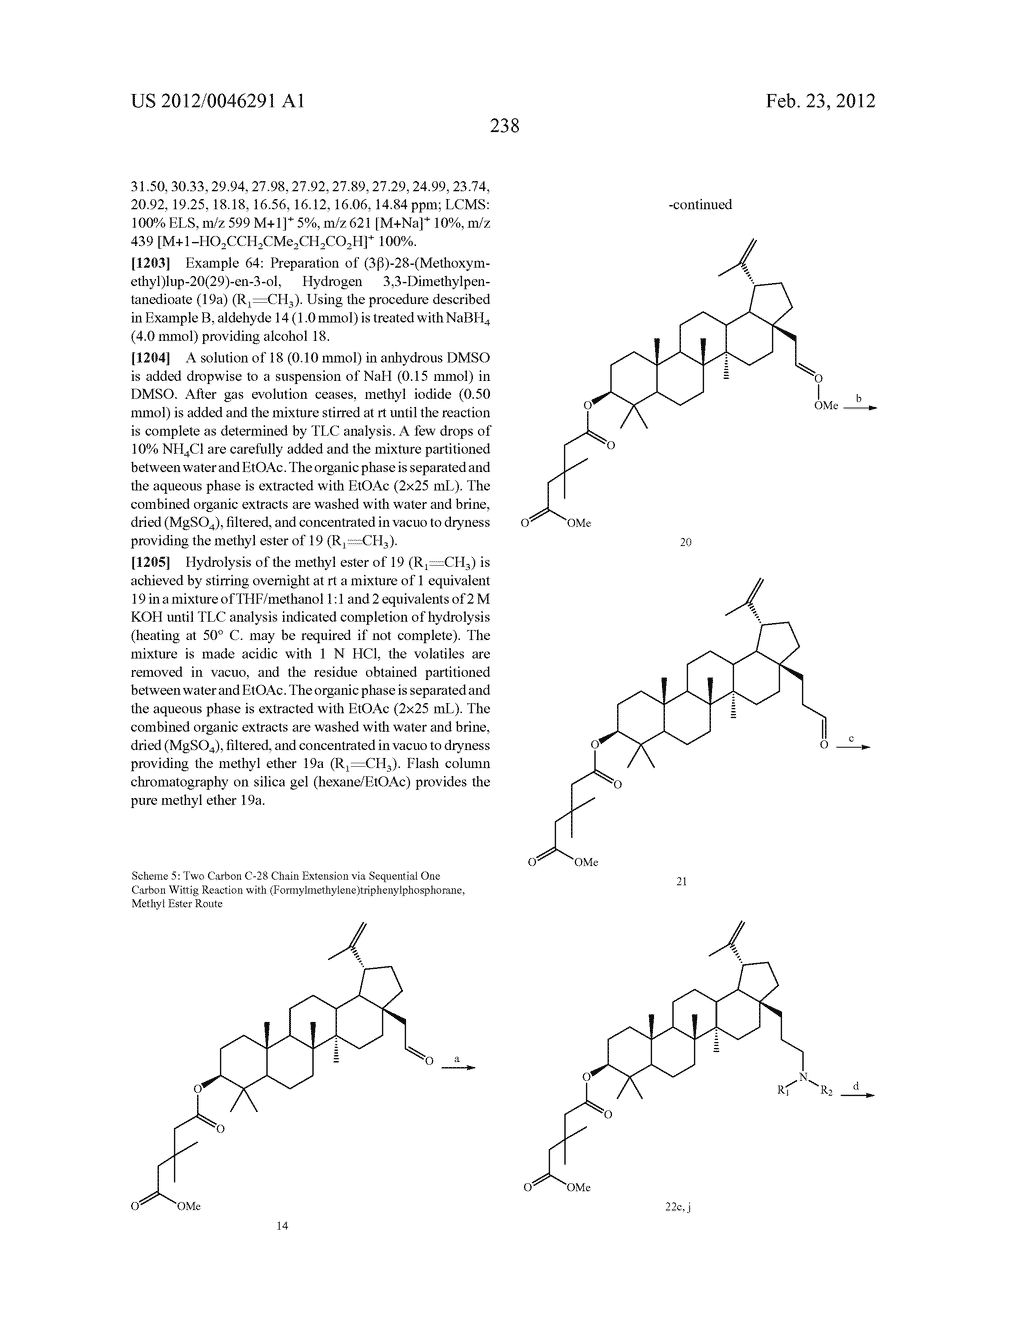 Extended Triterpene Derivatives - diagram, schematic, and image 238